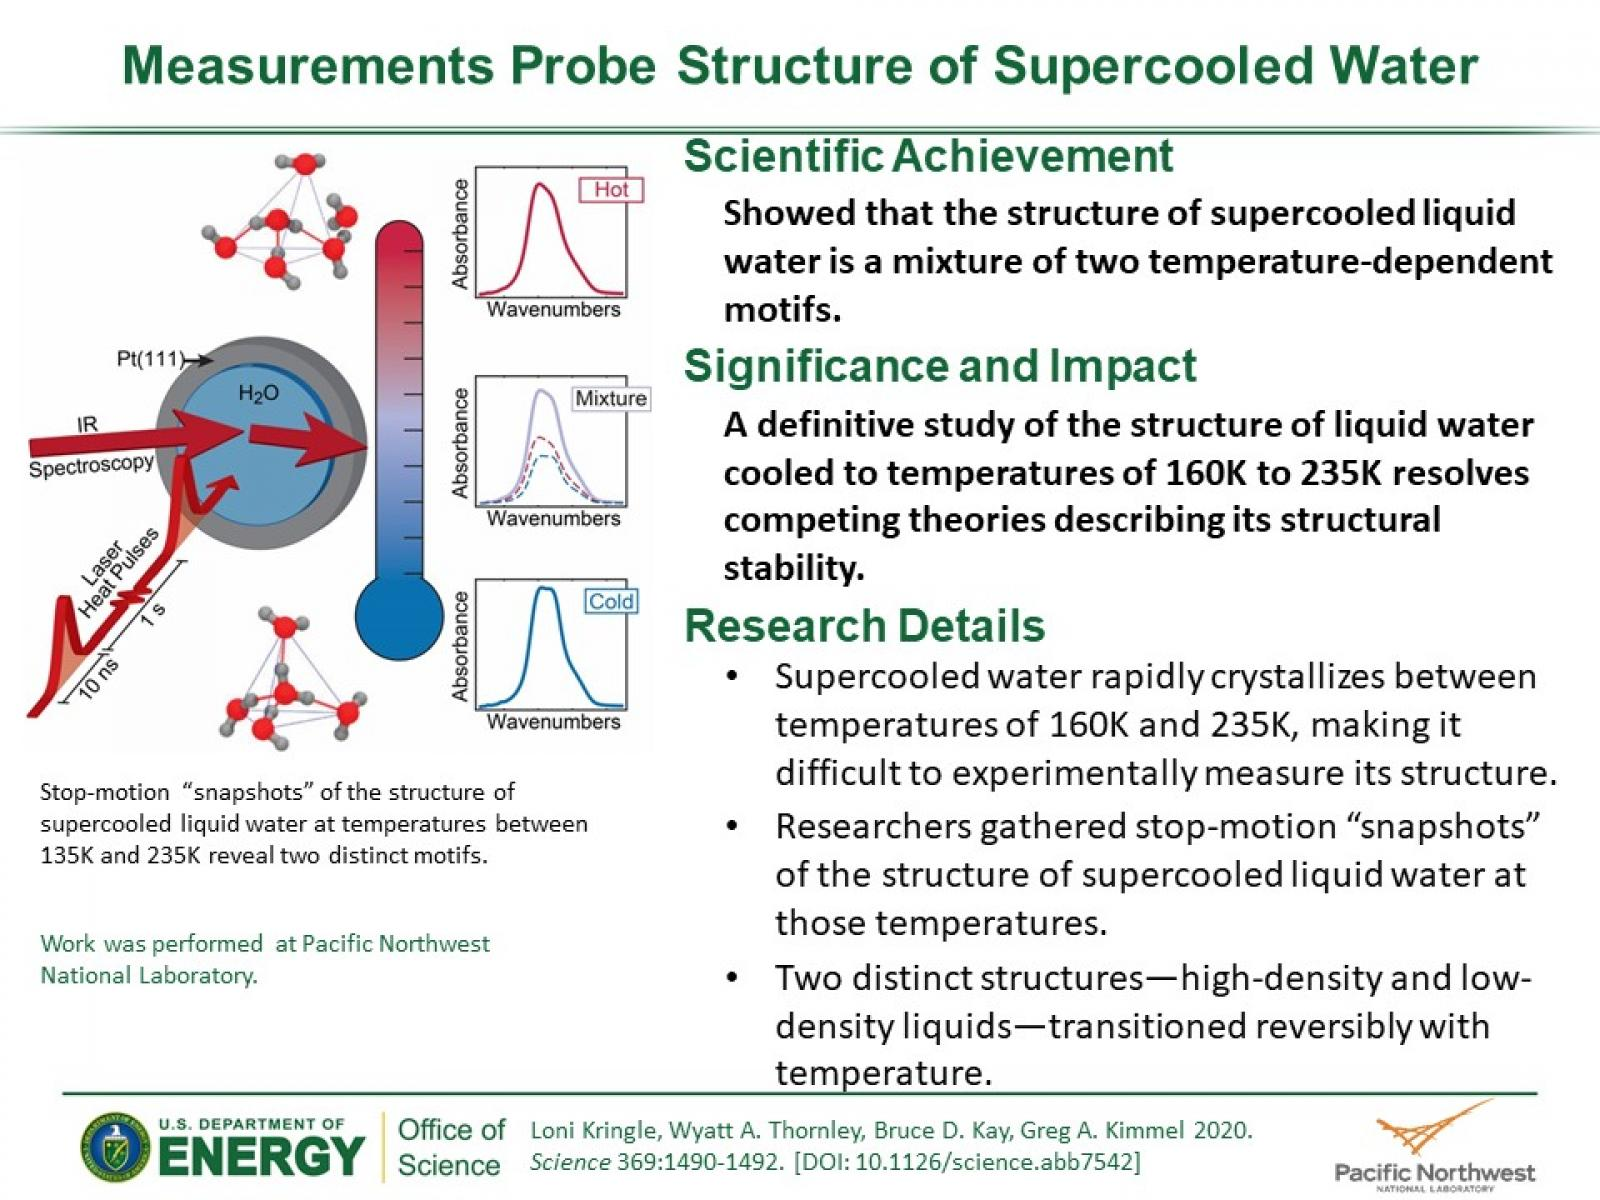 Slide of Measurements Probe Structure of Supercooled Water